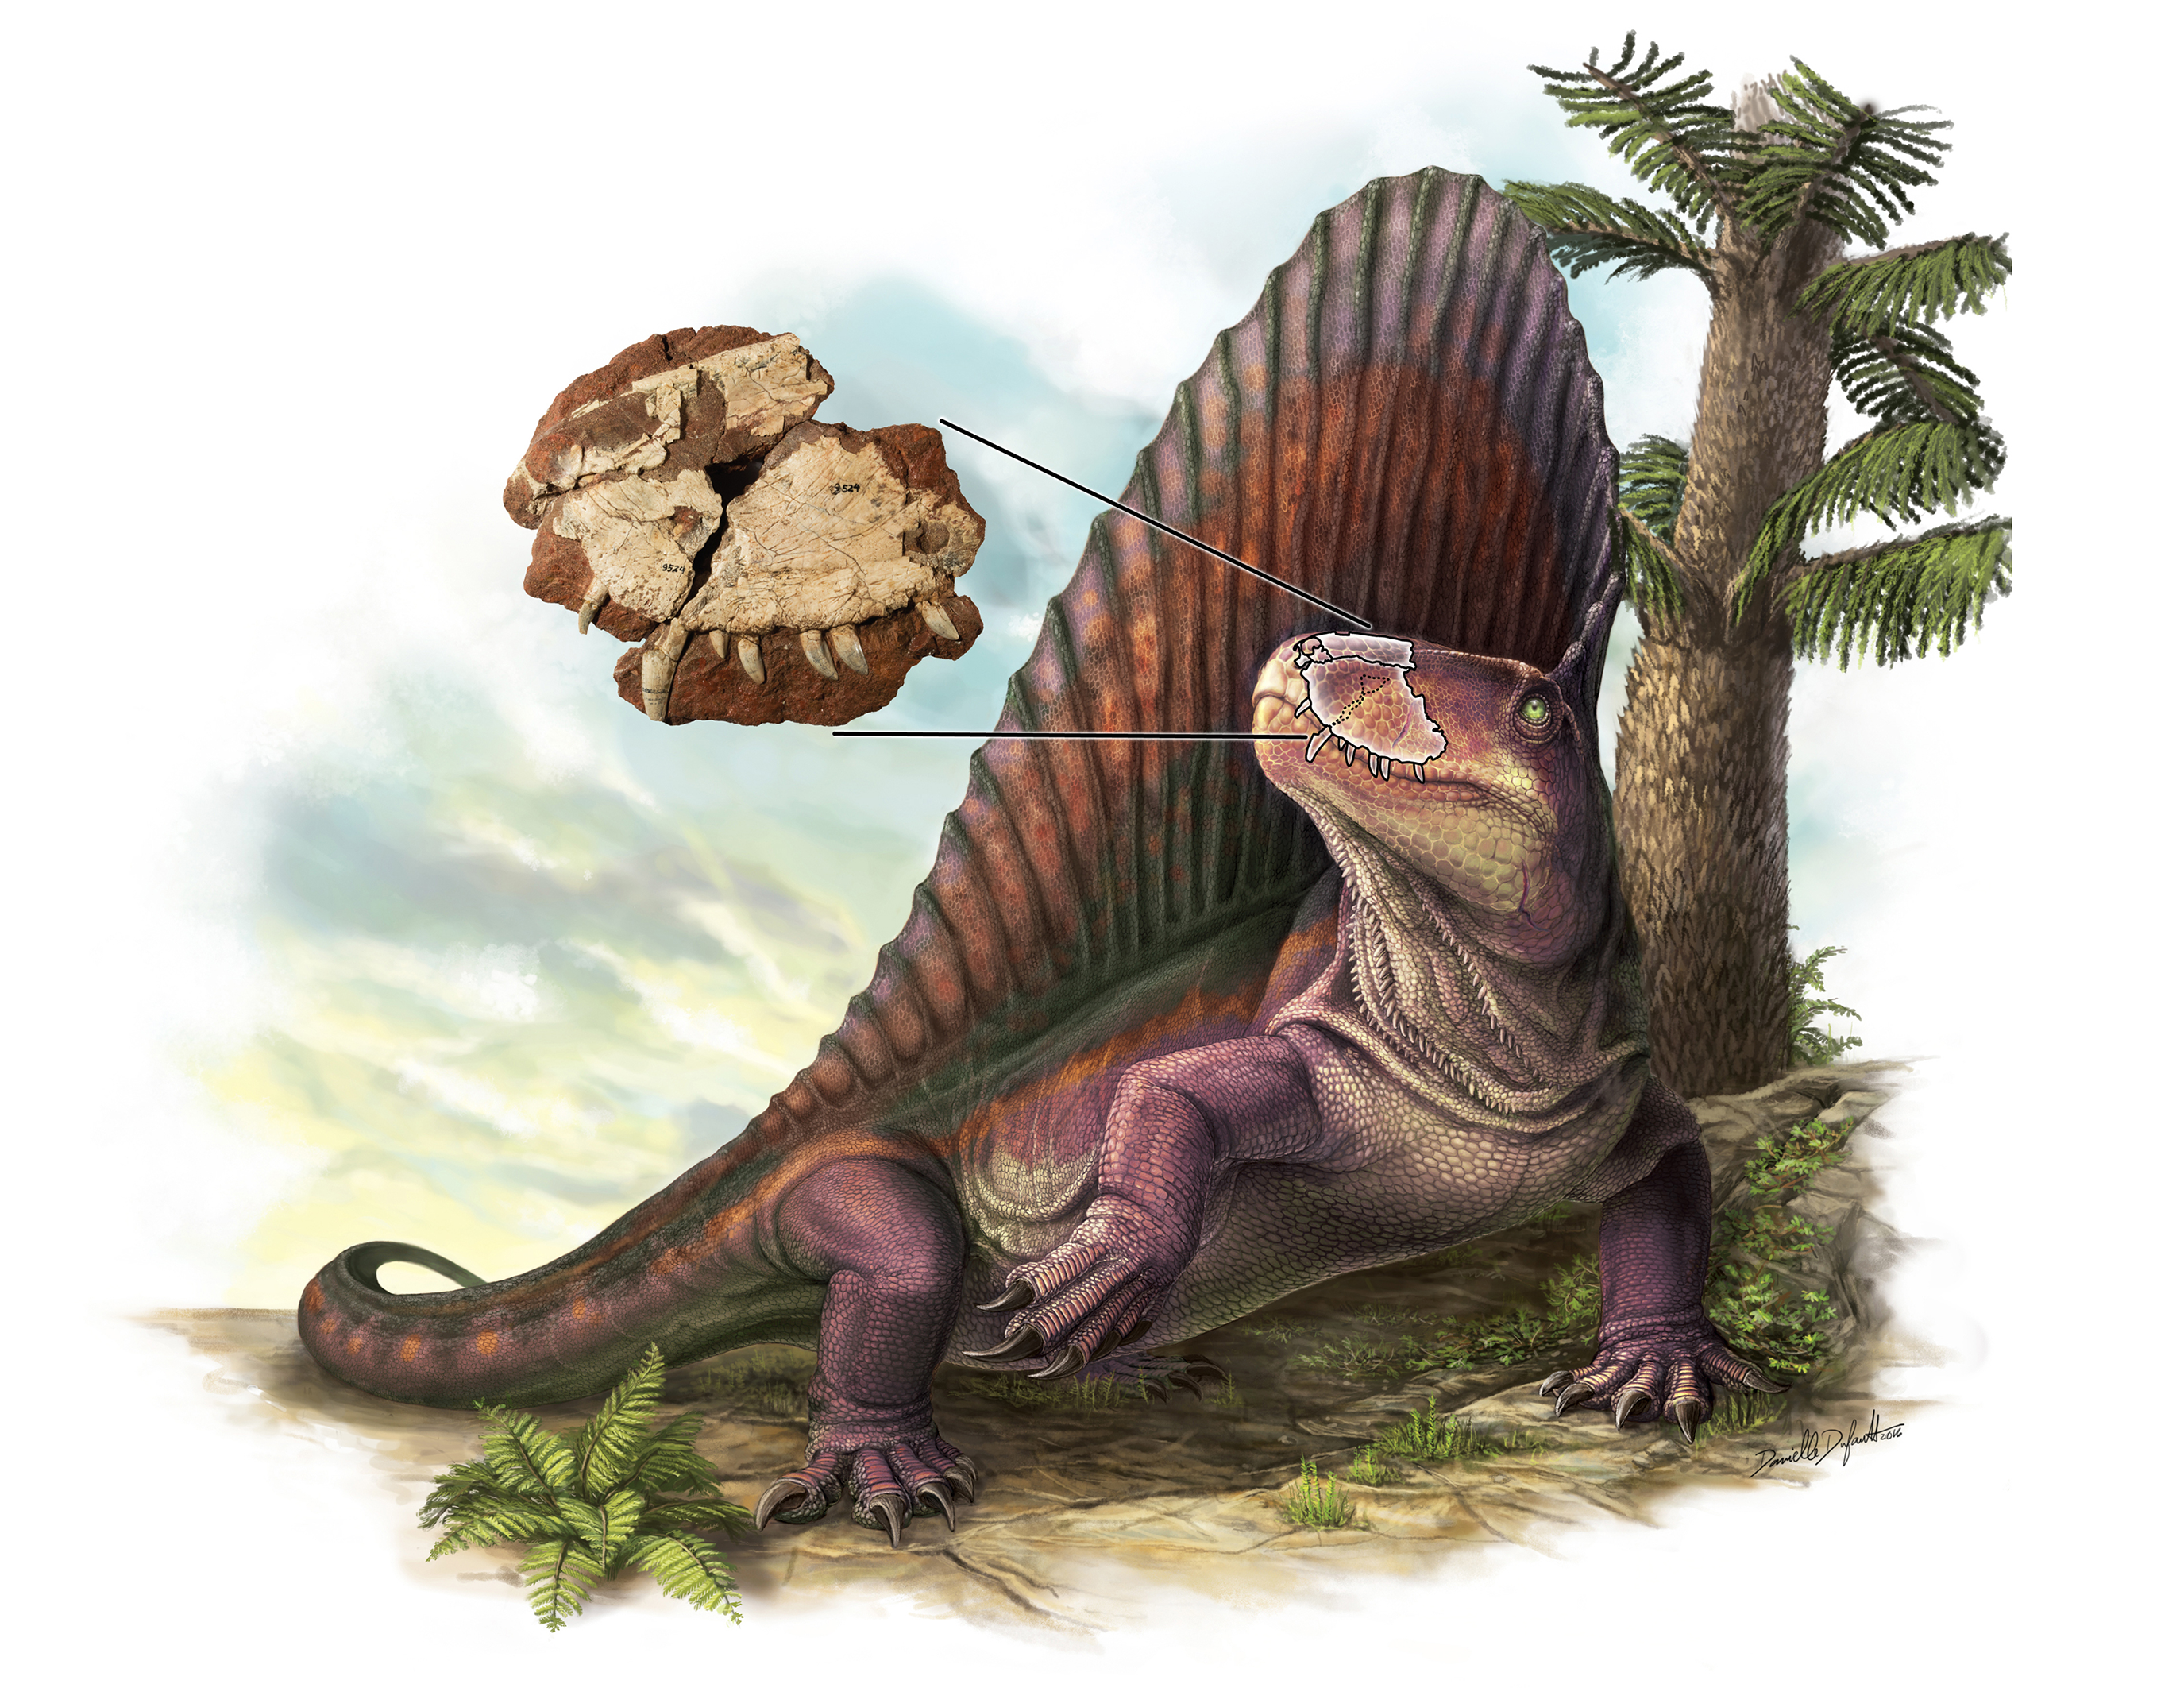 Dimetrodon_ROM2017_15552_2_11 pieces of Paleoart that bring the past back to life! Royal Ontario Museum.